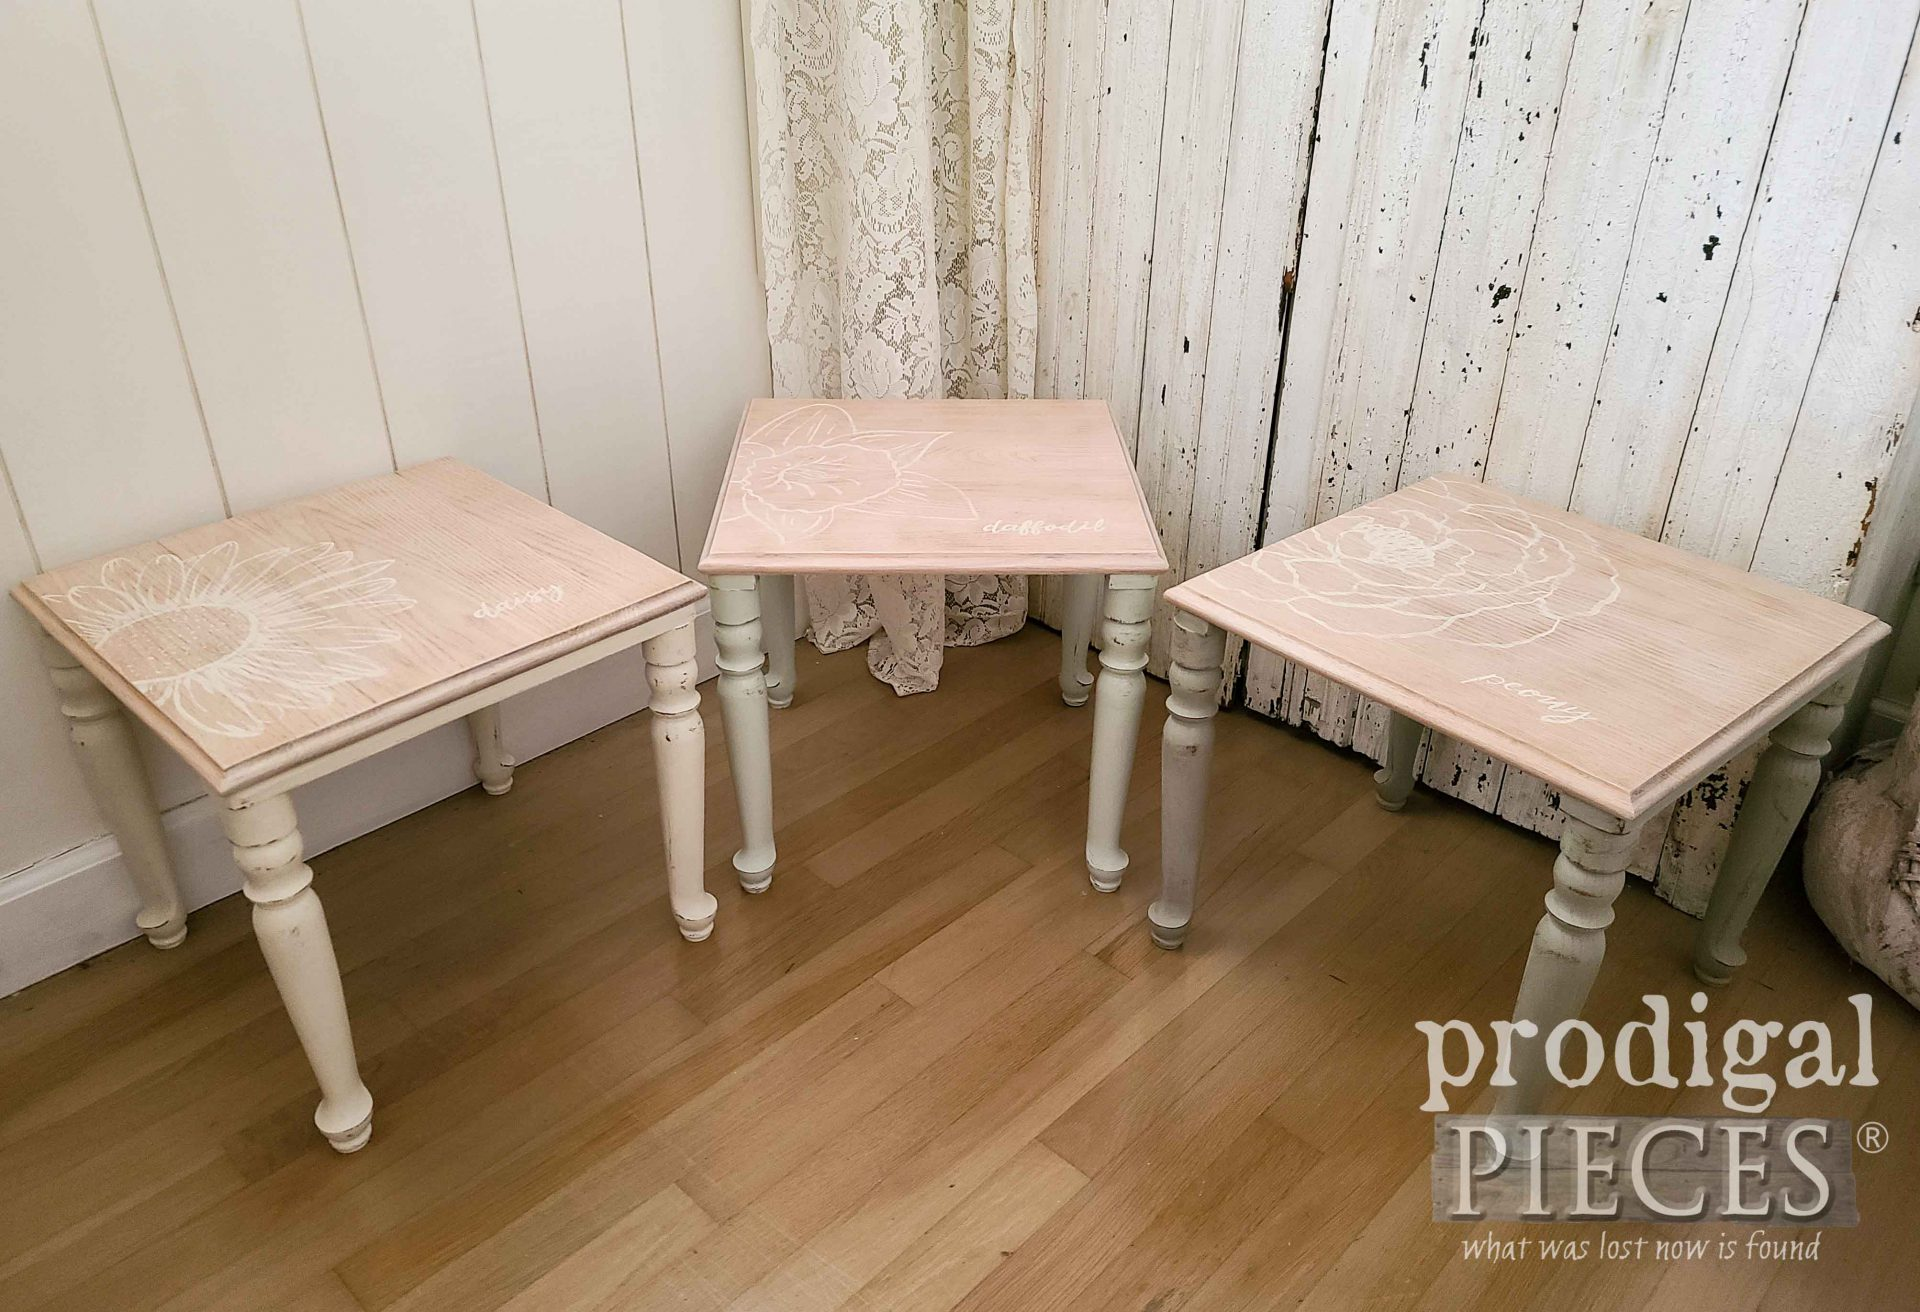 Floral Motif on Vintage Stacking Tables by Larissa of Prodigal Pieces | prodigalpieces.com #prodigalpieces #furniture #diy #home